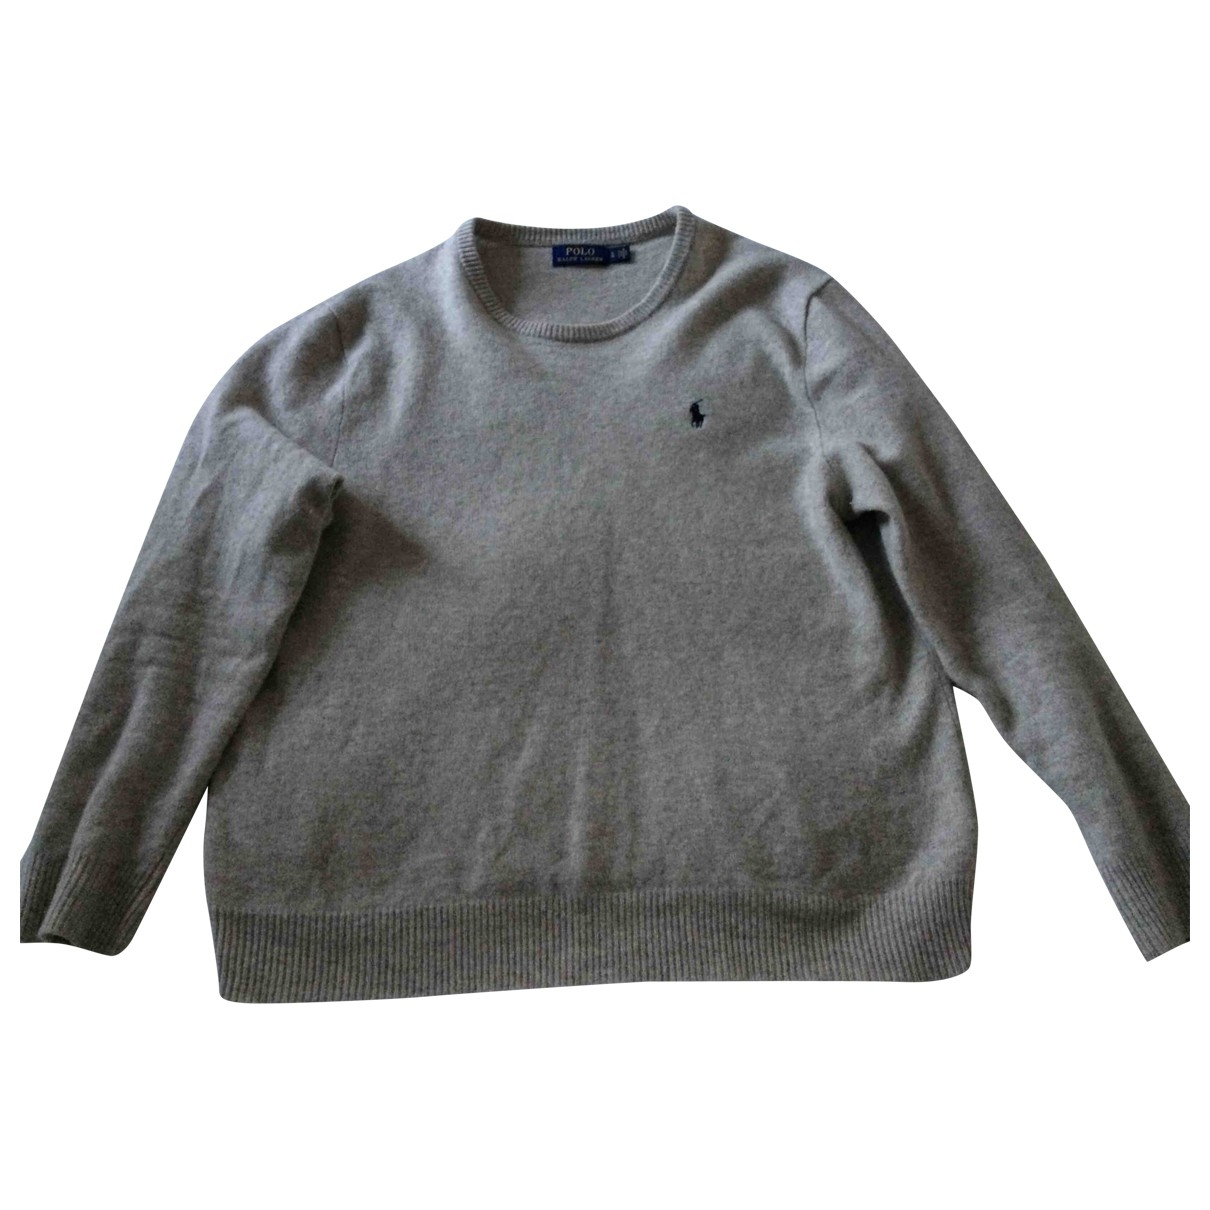 Polo Ralph Lauren \N Beige Wool Knitwear & Sweatshirts for Men L International